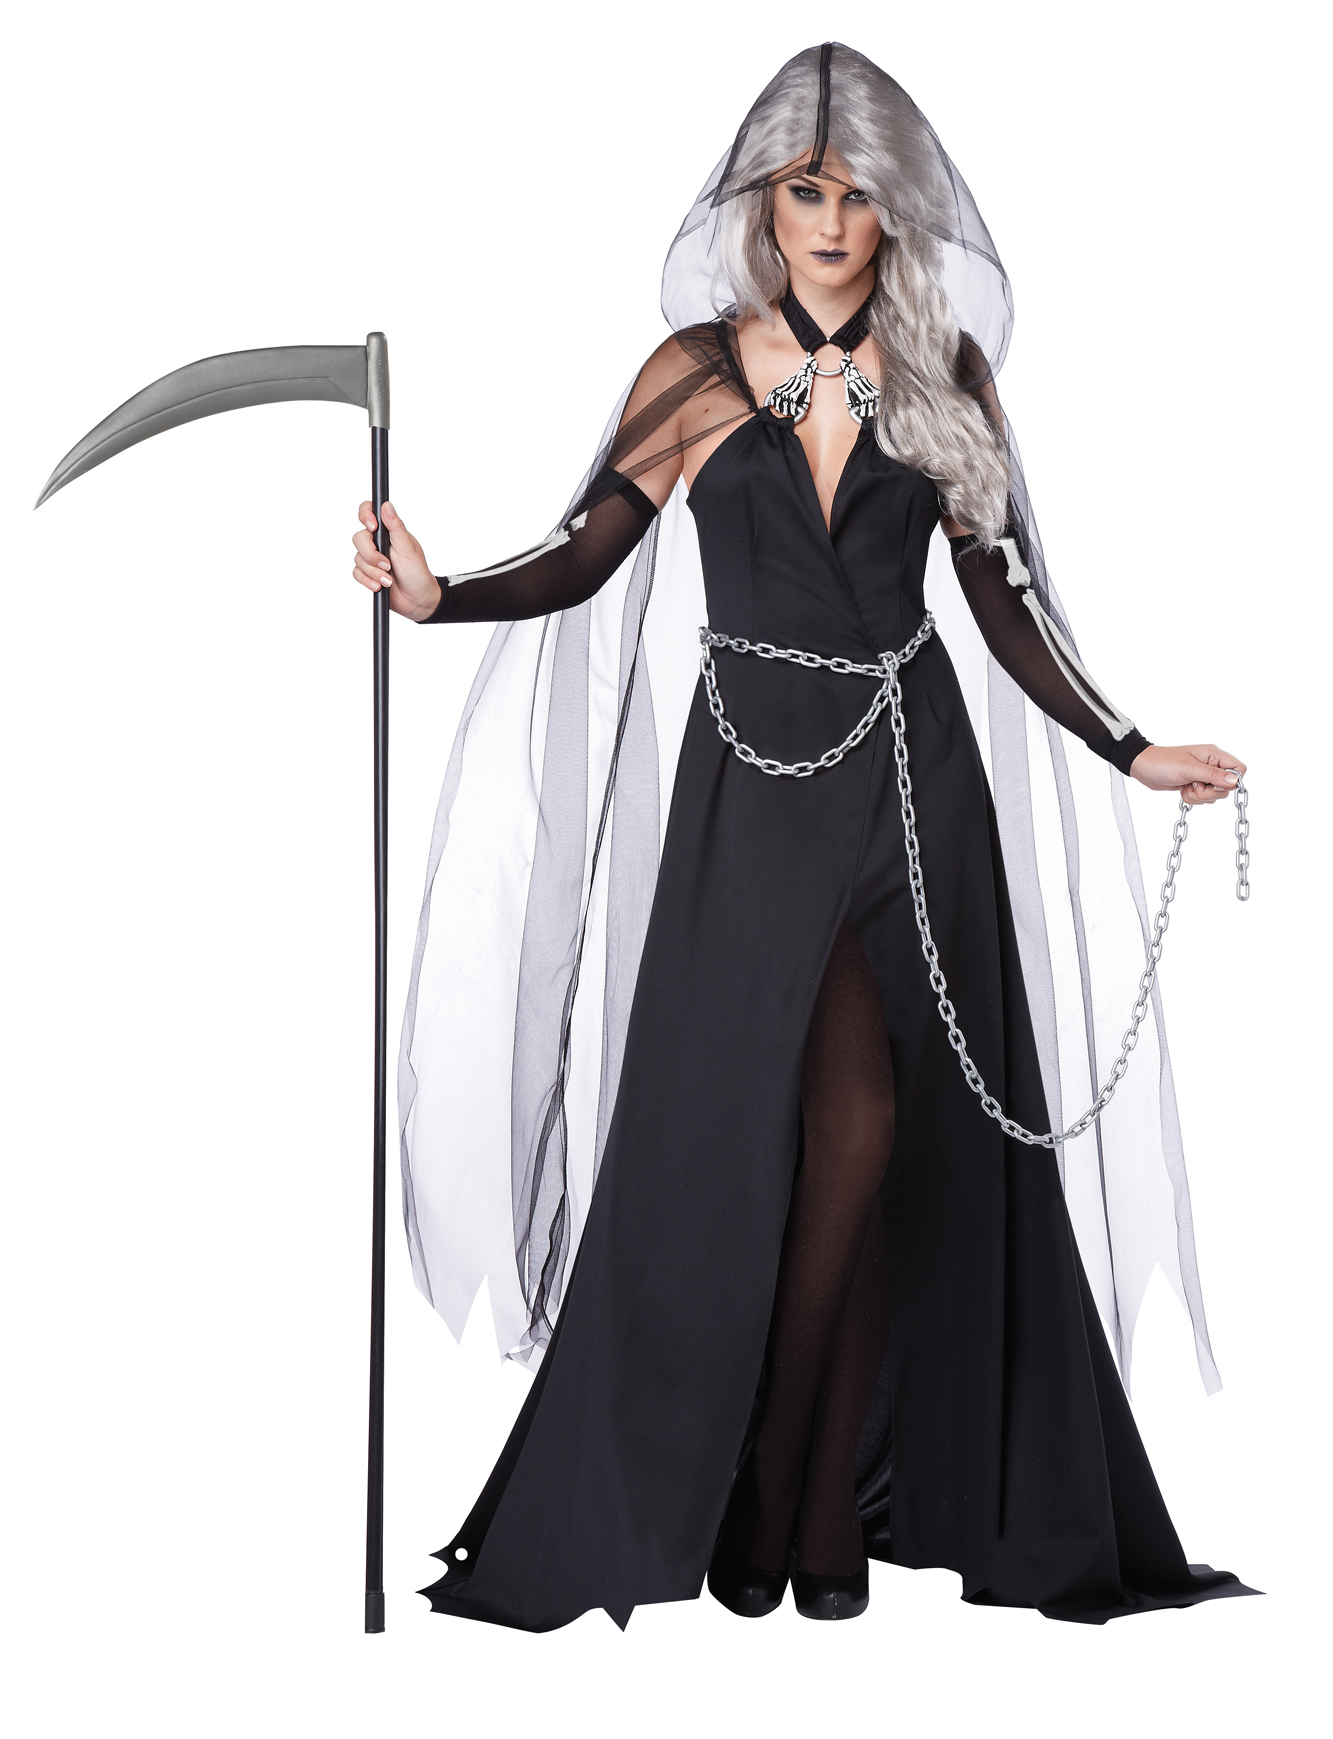 adult women's grim reaper halloween costume death killer dress cape